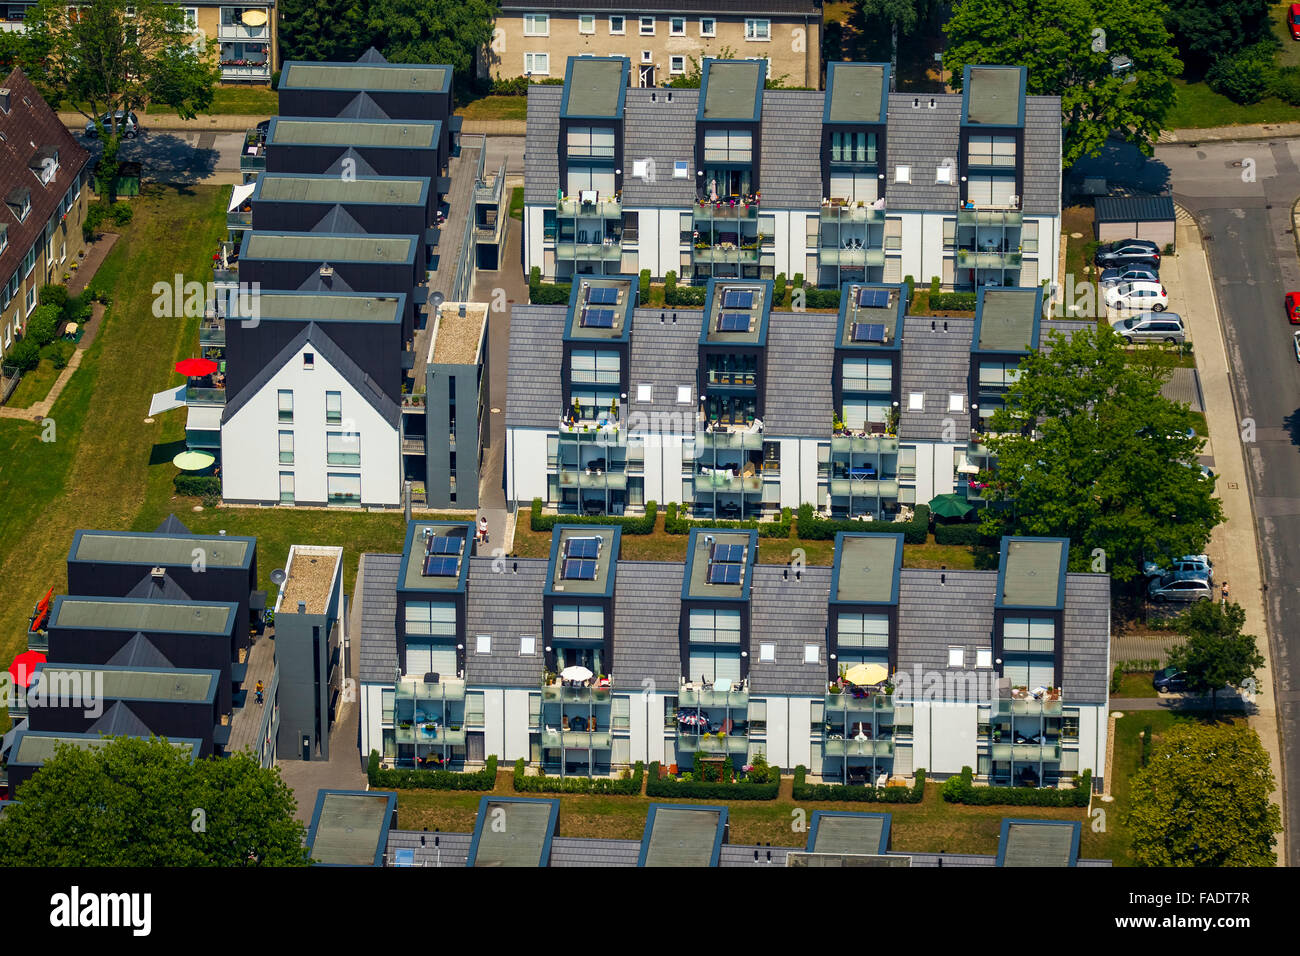 Aerial view, Better Living with sun terraces in the southern city, Hattingen, Ruhr region, North rhine westphalia, - Stock Image